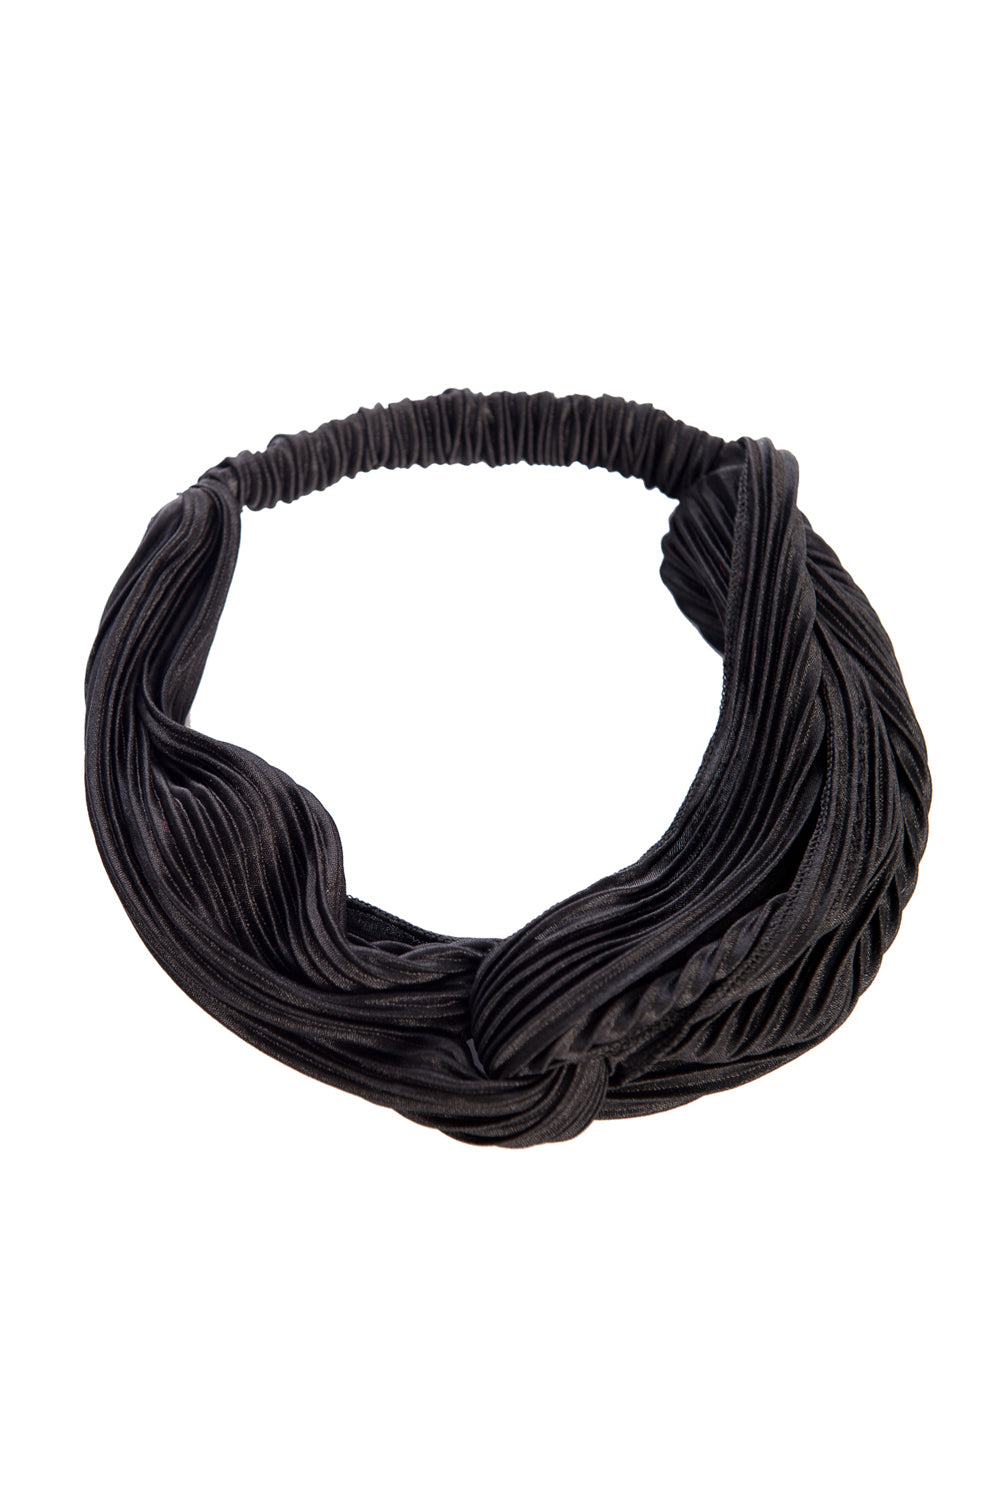 Vintage Hairband Black